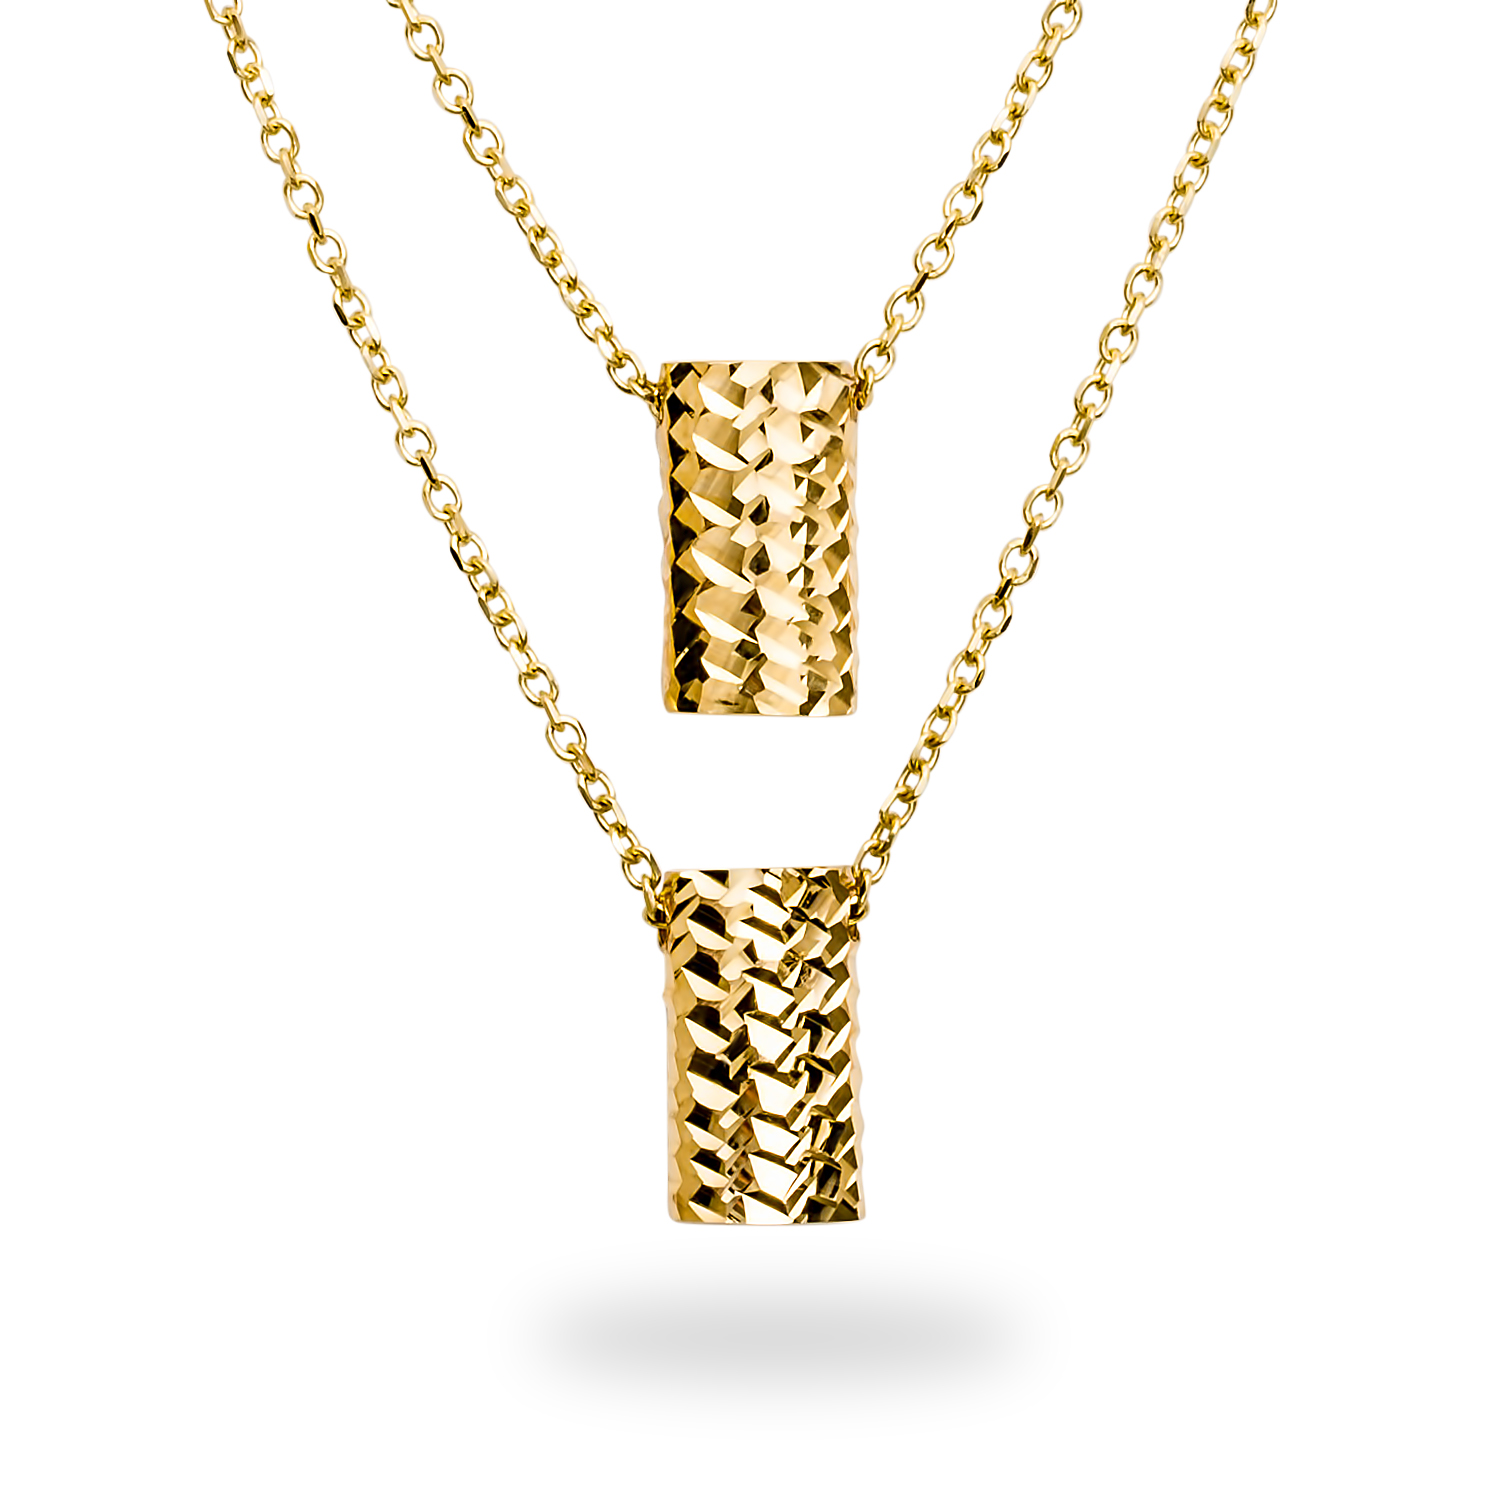 14k Gold Polished Diamond-Cut Rectangle Necklace